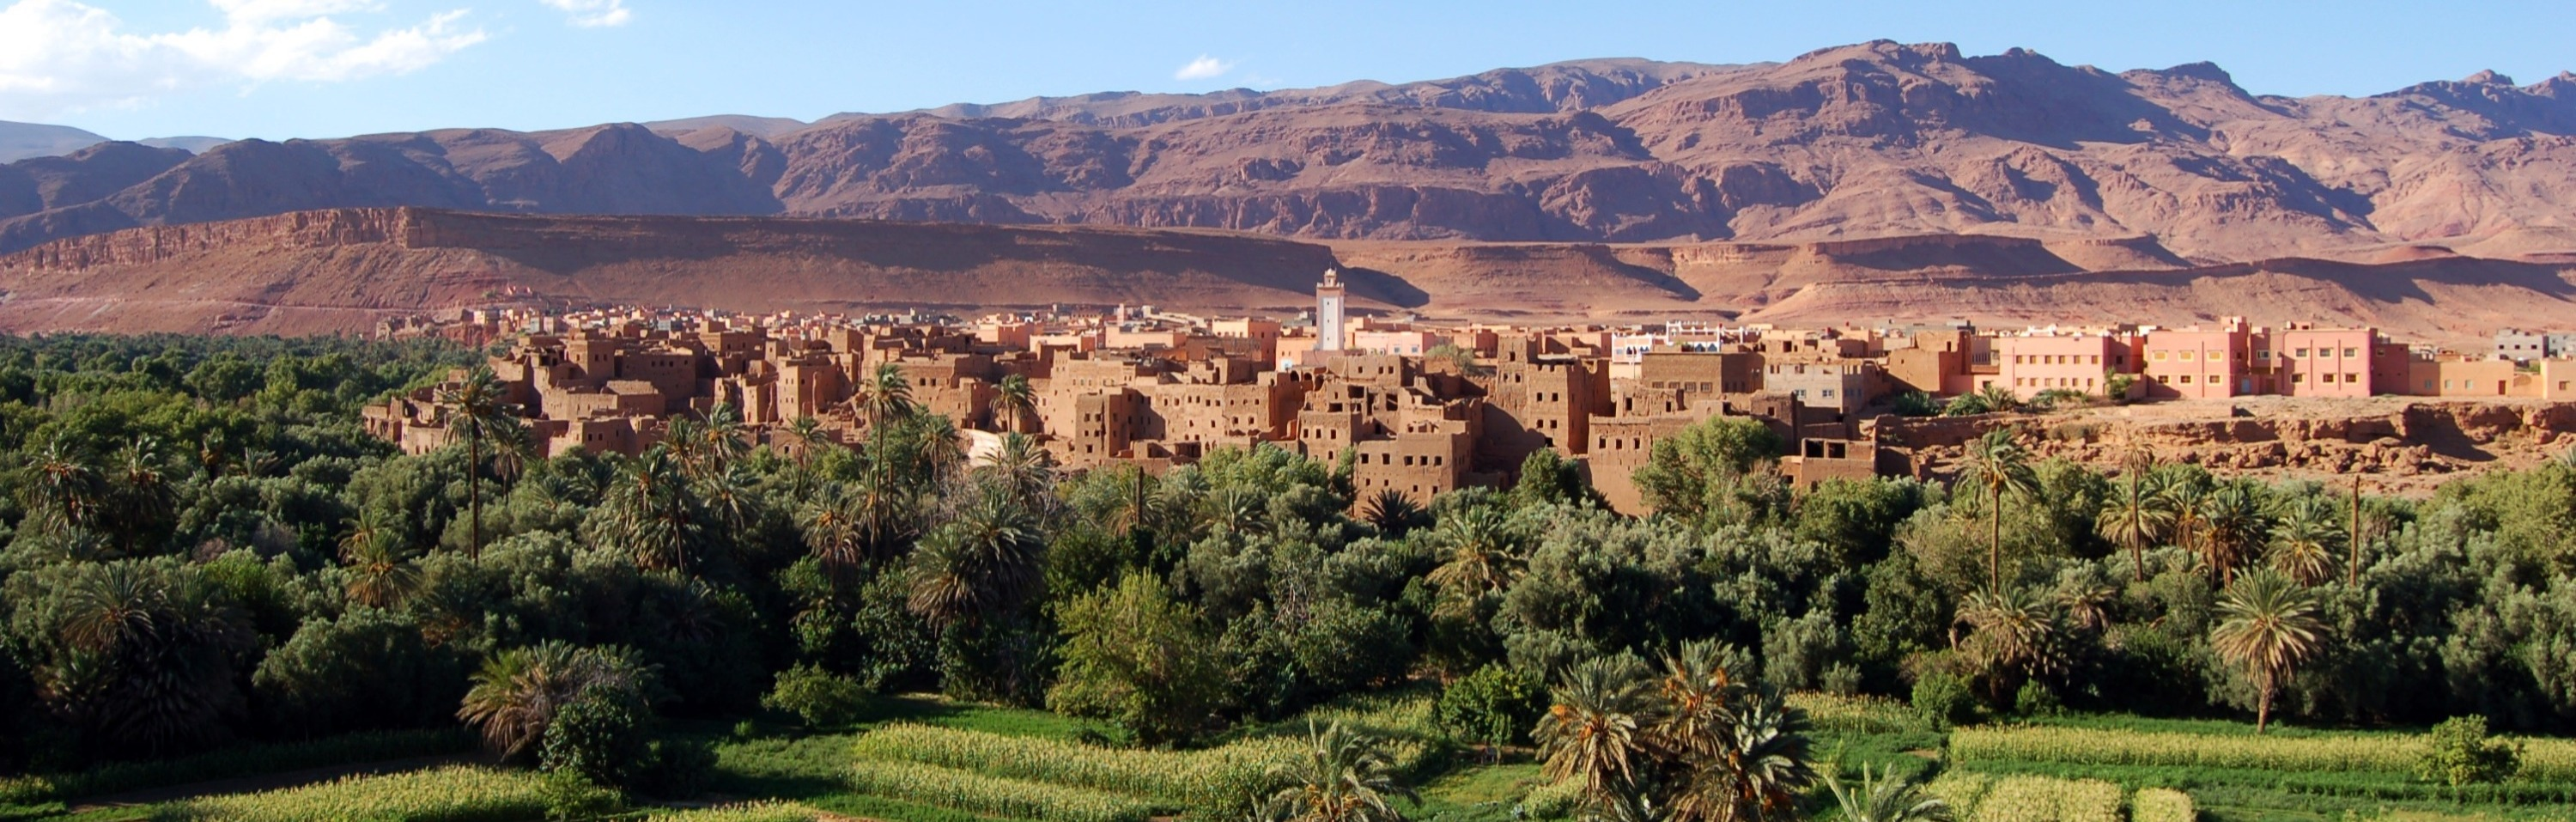 FROM DADES VALLEY TO DODGHA GORGES - DEPARTURES FROM MARRAKECH